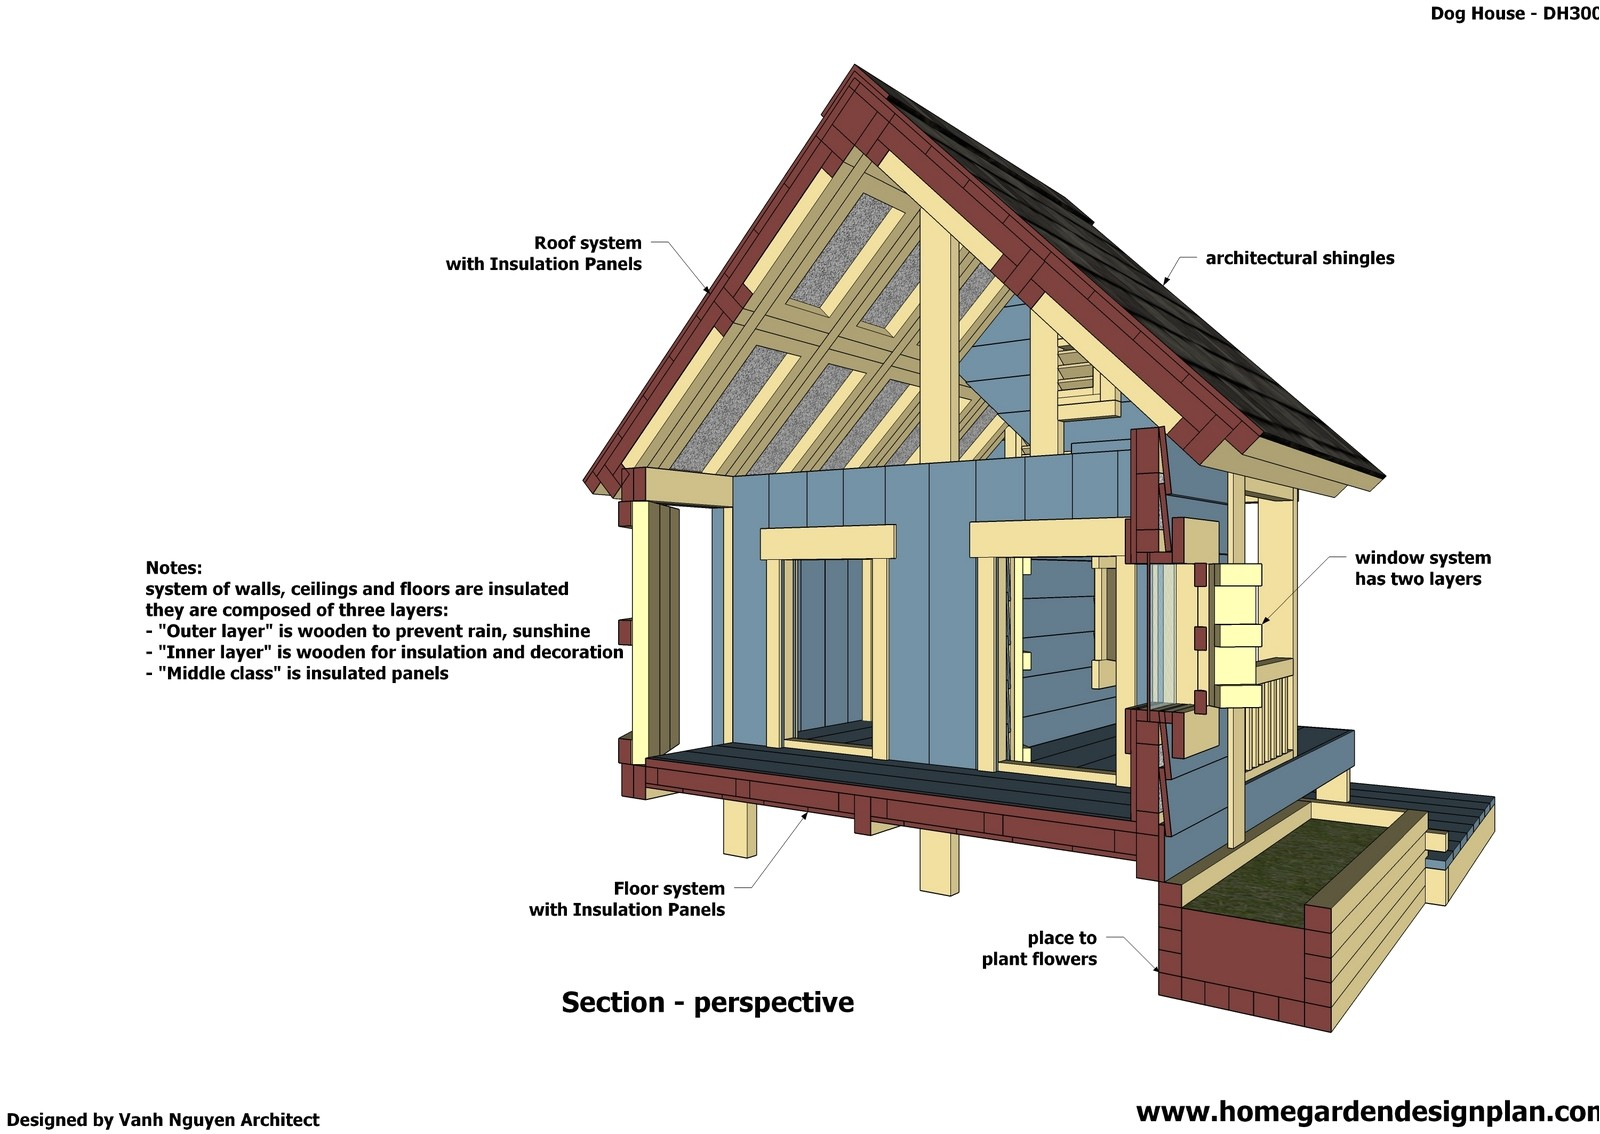 2 dog house plans free wooden plans